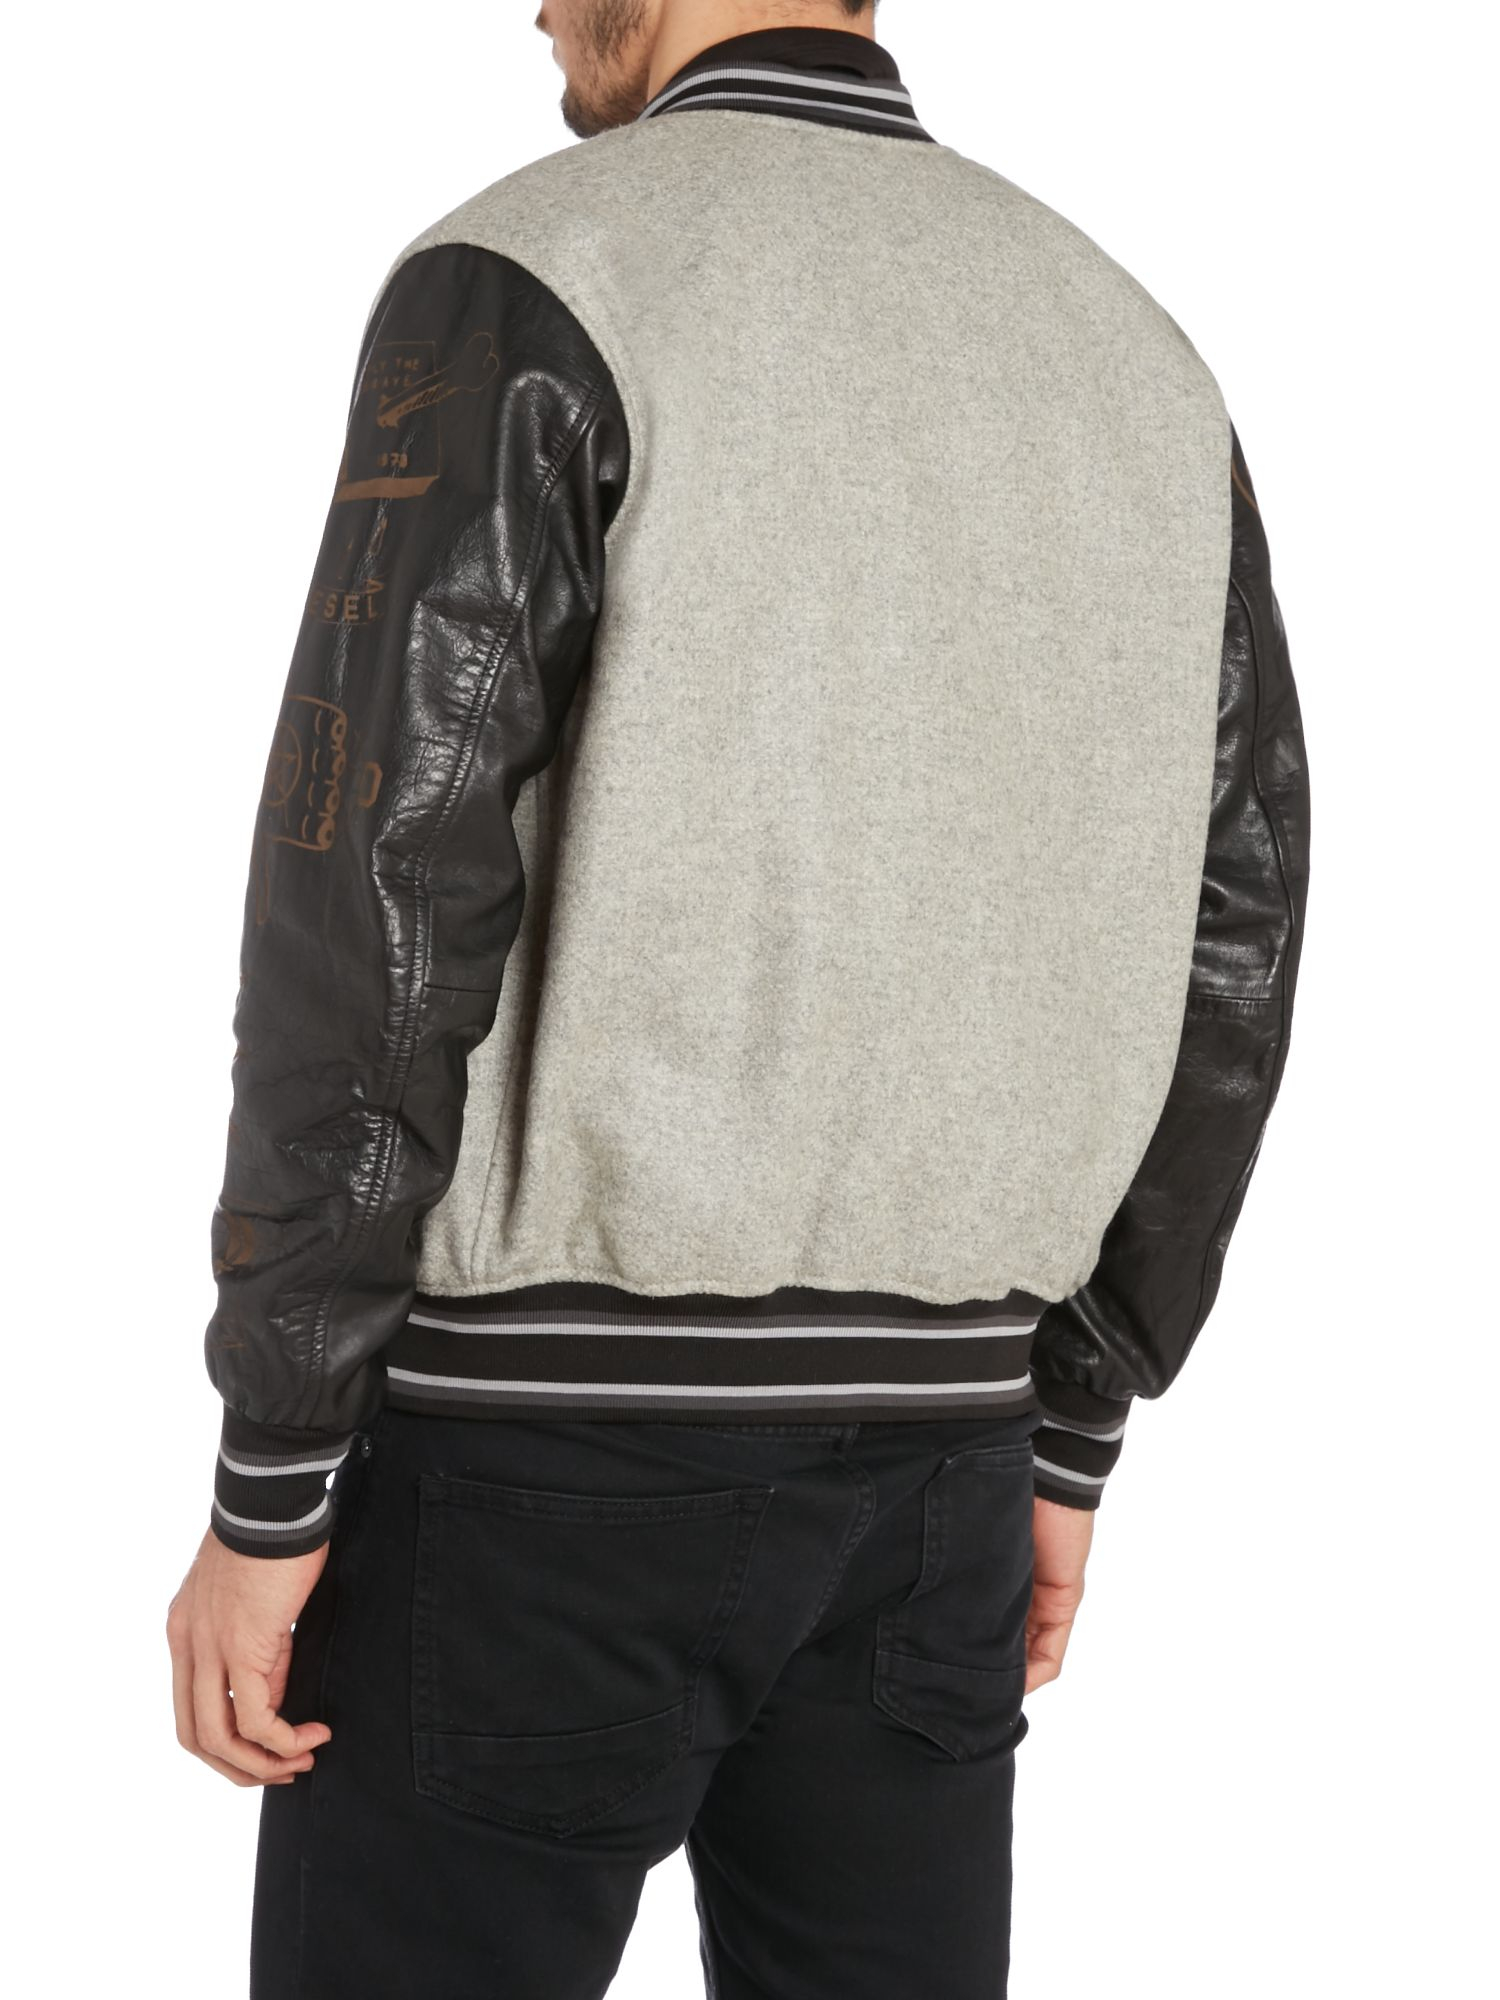 Diesel Leather Sleeve Baseball Jacket In Gray For Men | Lyst